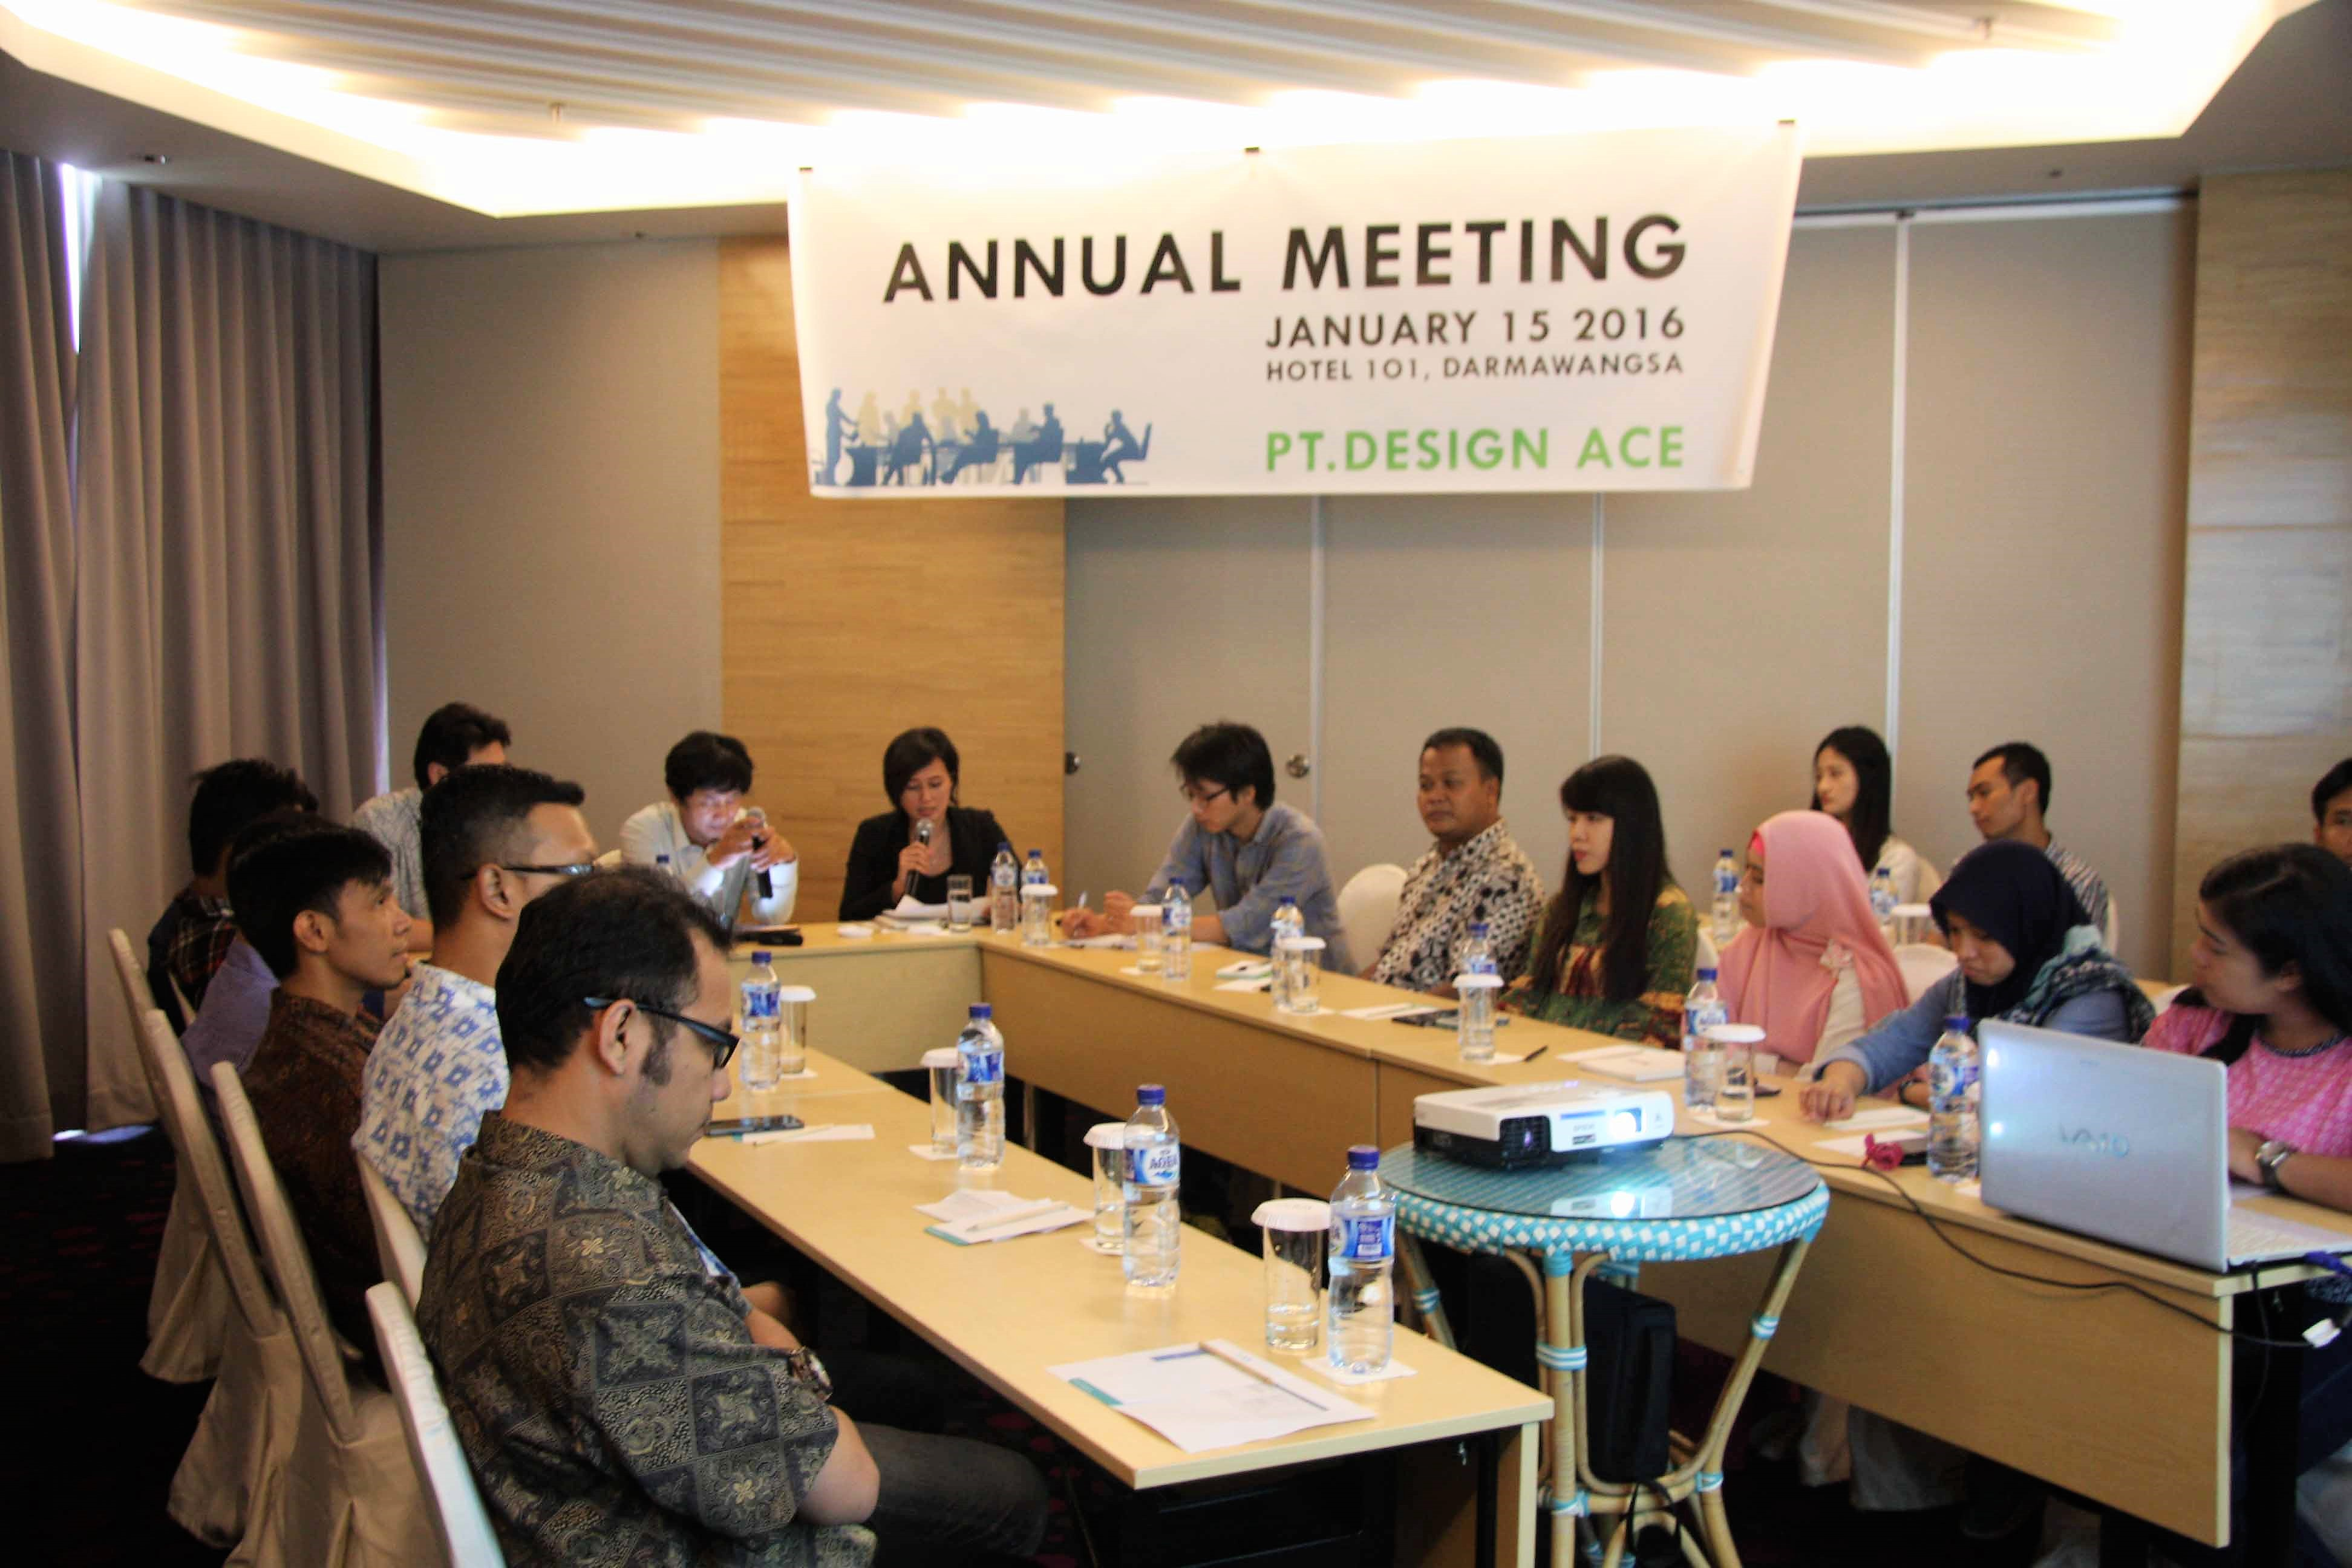 Design Ace Annual Meeting 2016 (1)